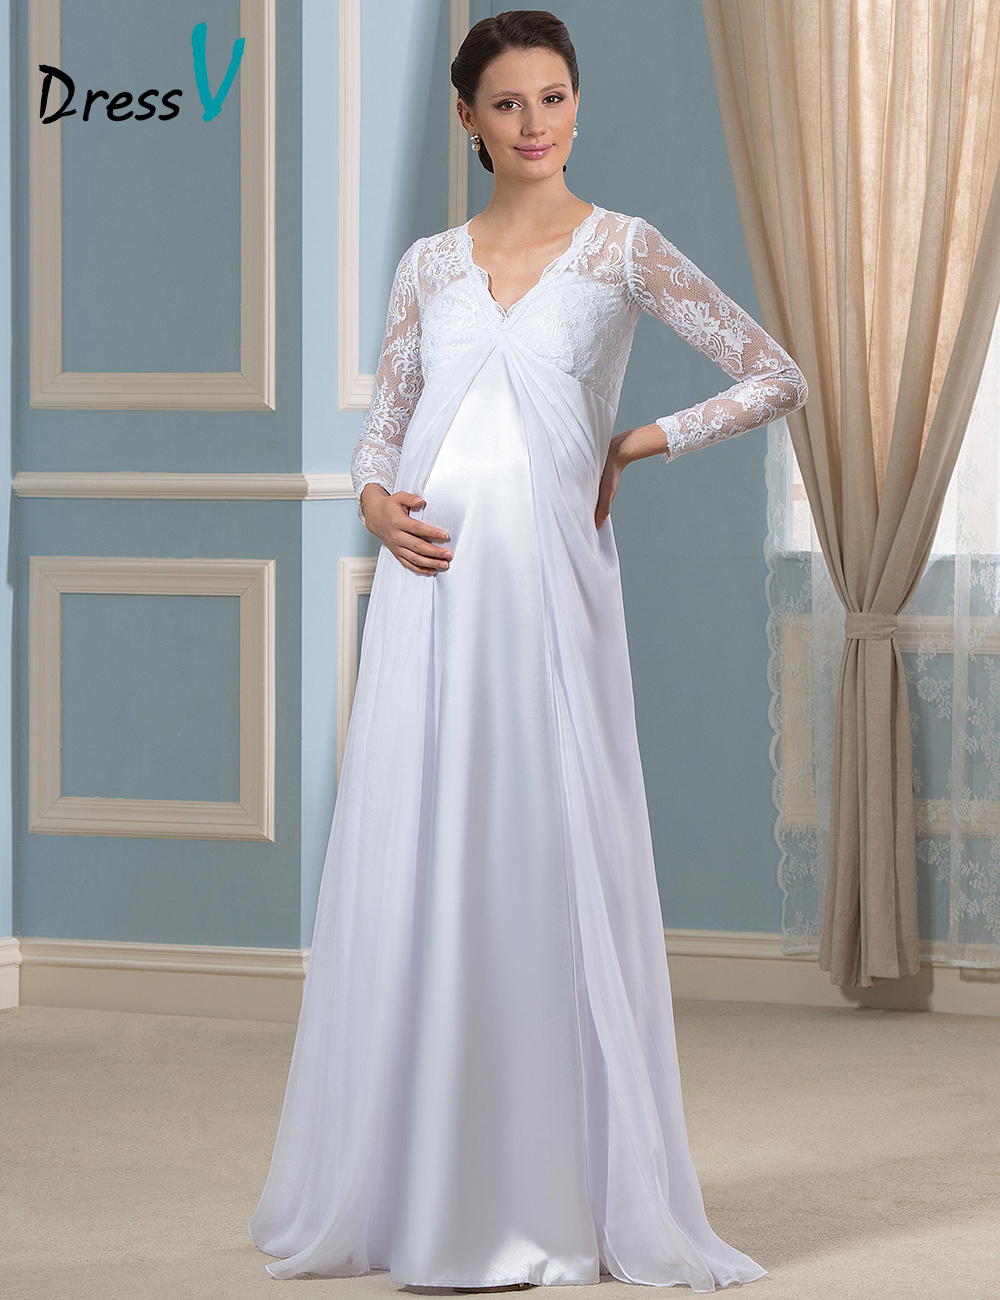 2016 New Feshion White Maternity Wedding Dresses For Pregnant Deep V neck Lace on body Empire A